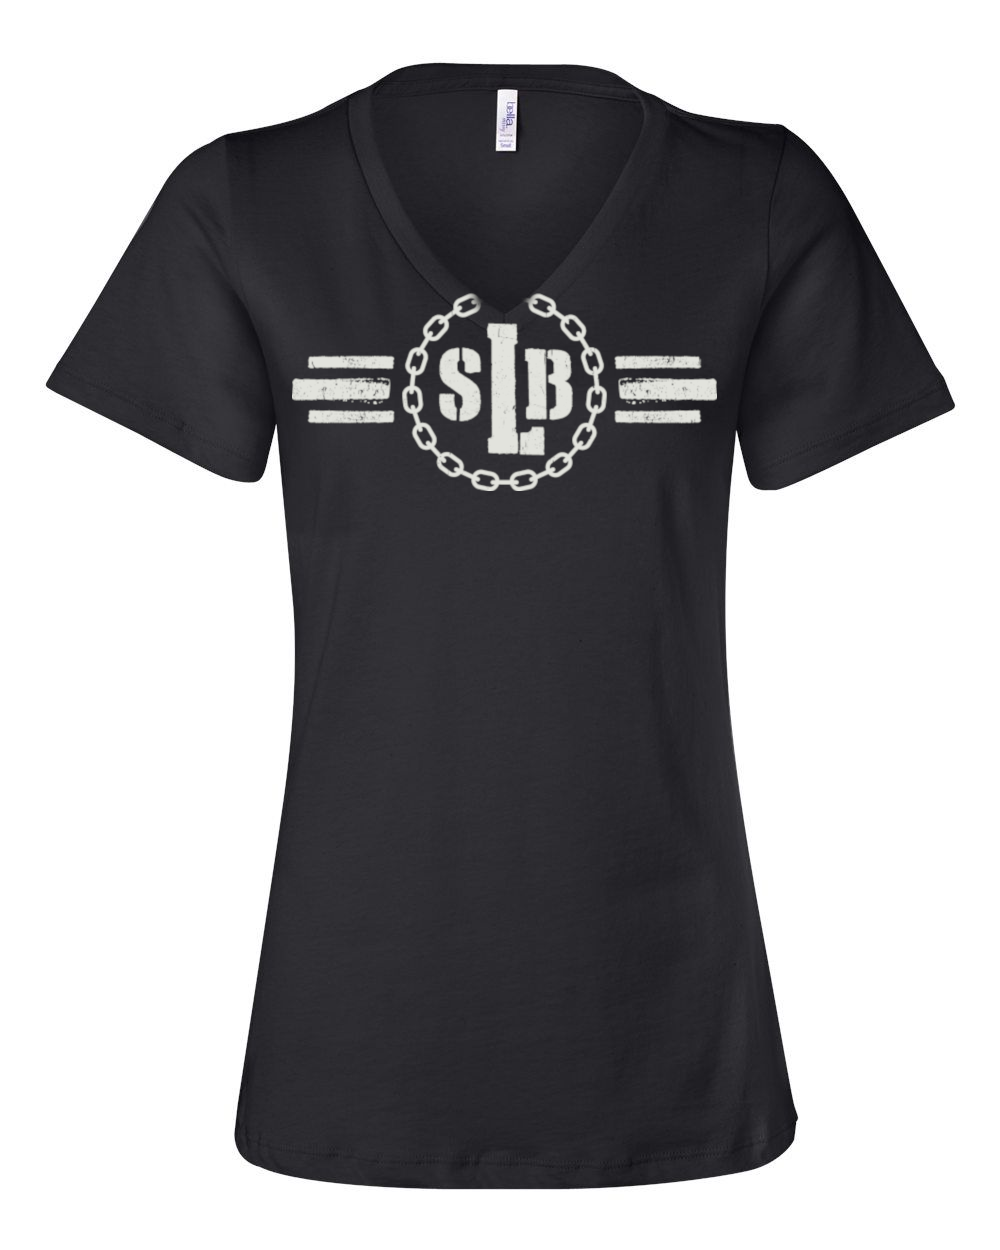 Women's Relaxed Fit Short-Sleeve V-Neck - SLB Logo Double-Sided Black Tee